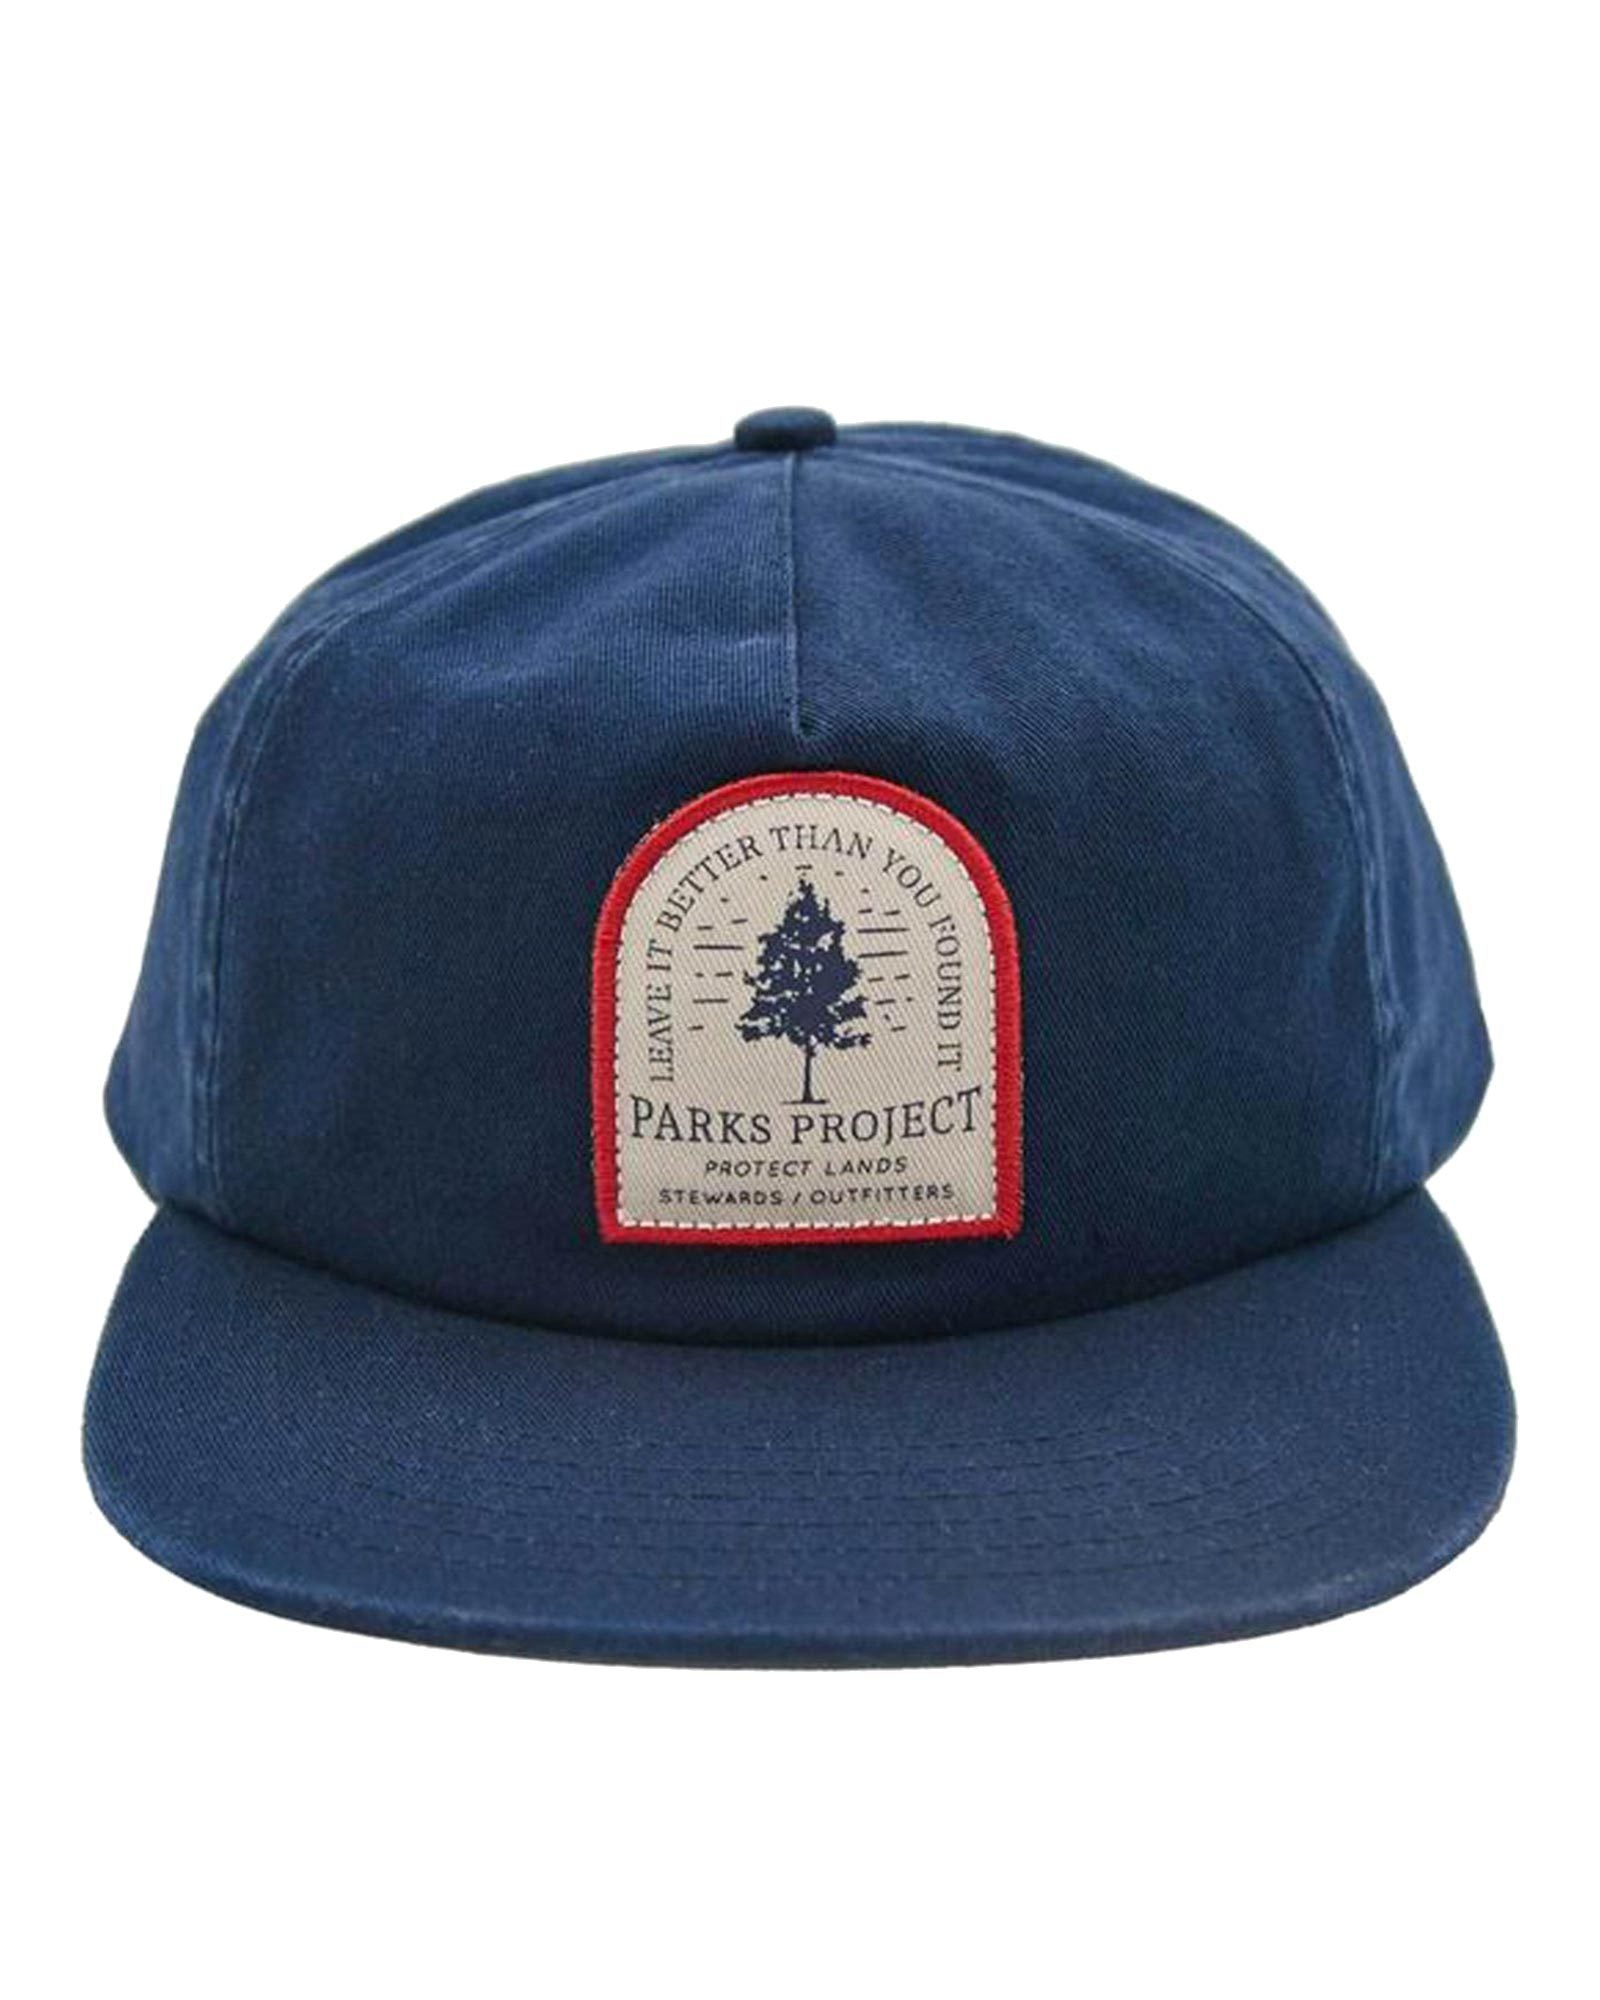 Leave it Better Tree Patch Hat | Parks Project | National Park Hat